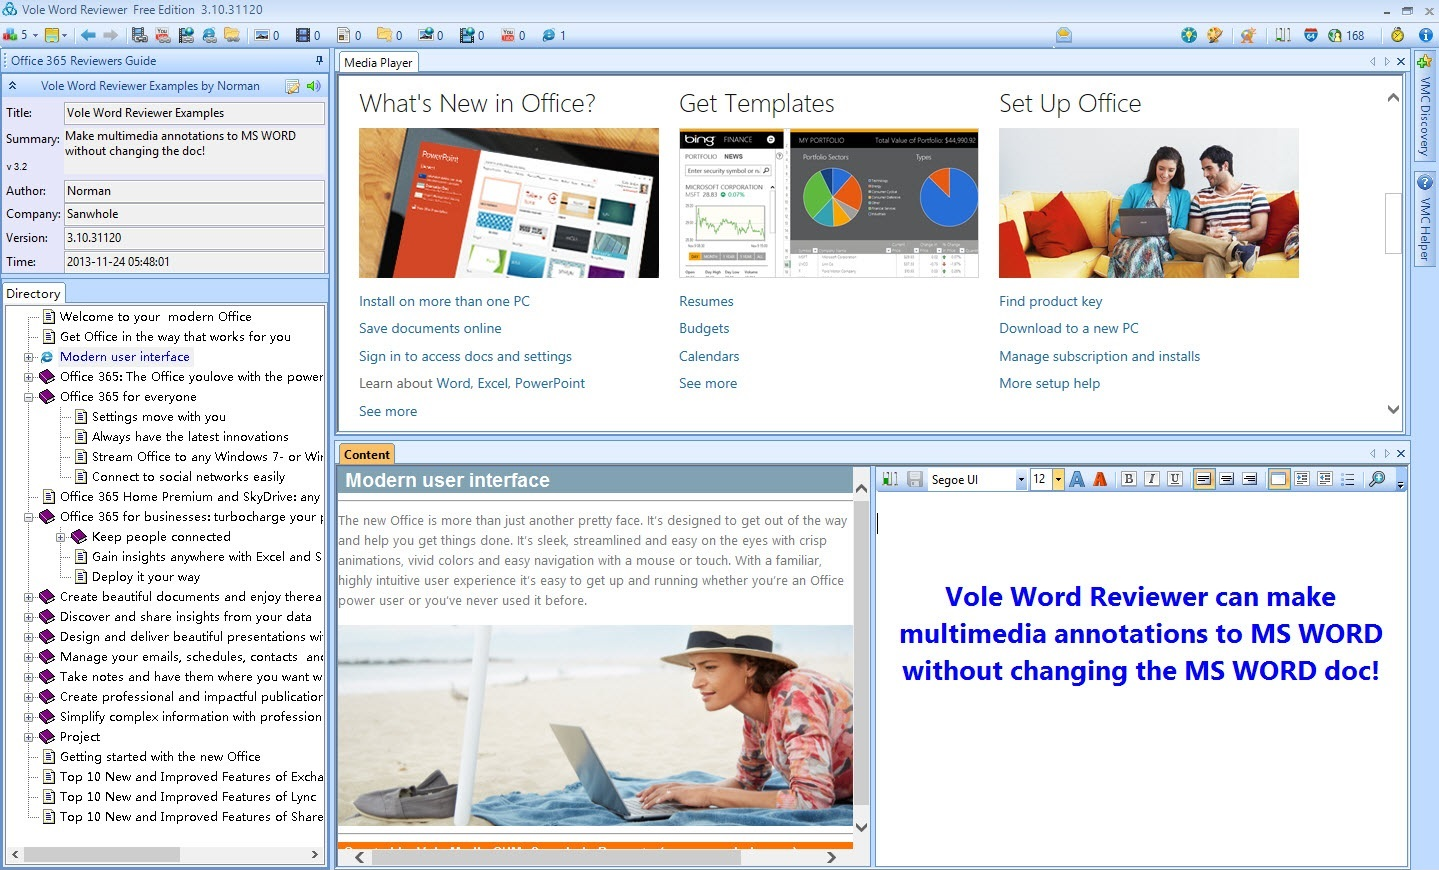 Vole Word Reviewer Ultimate Edition Screenshot